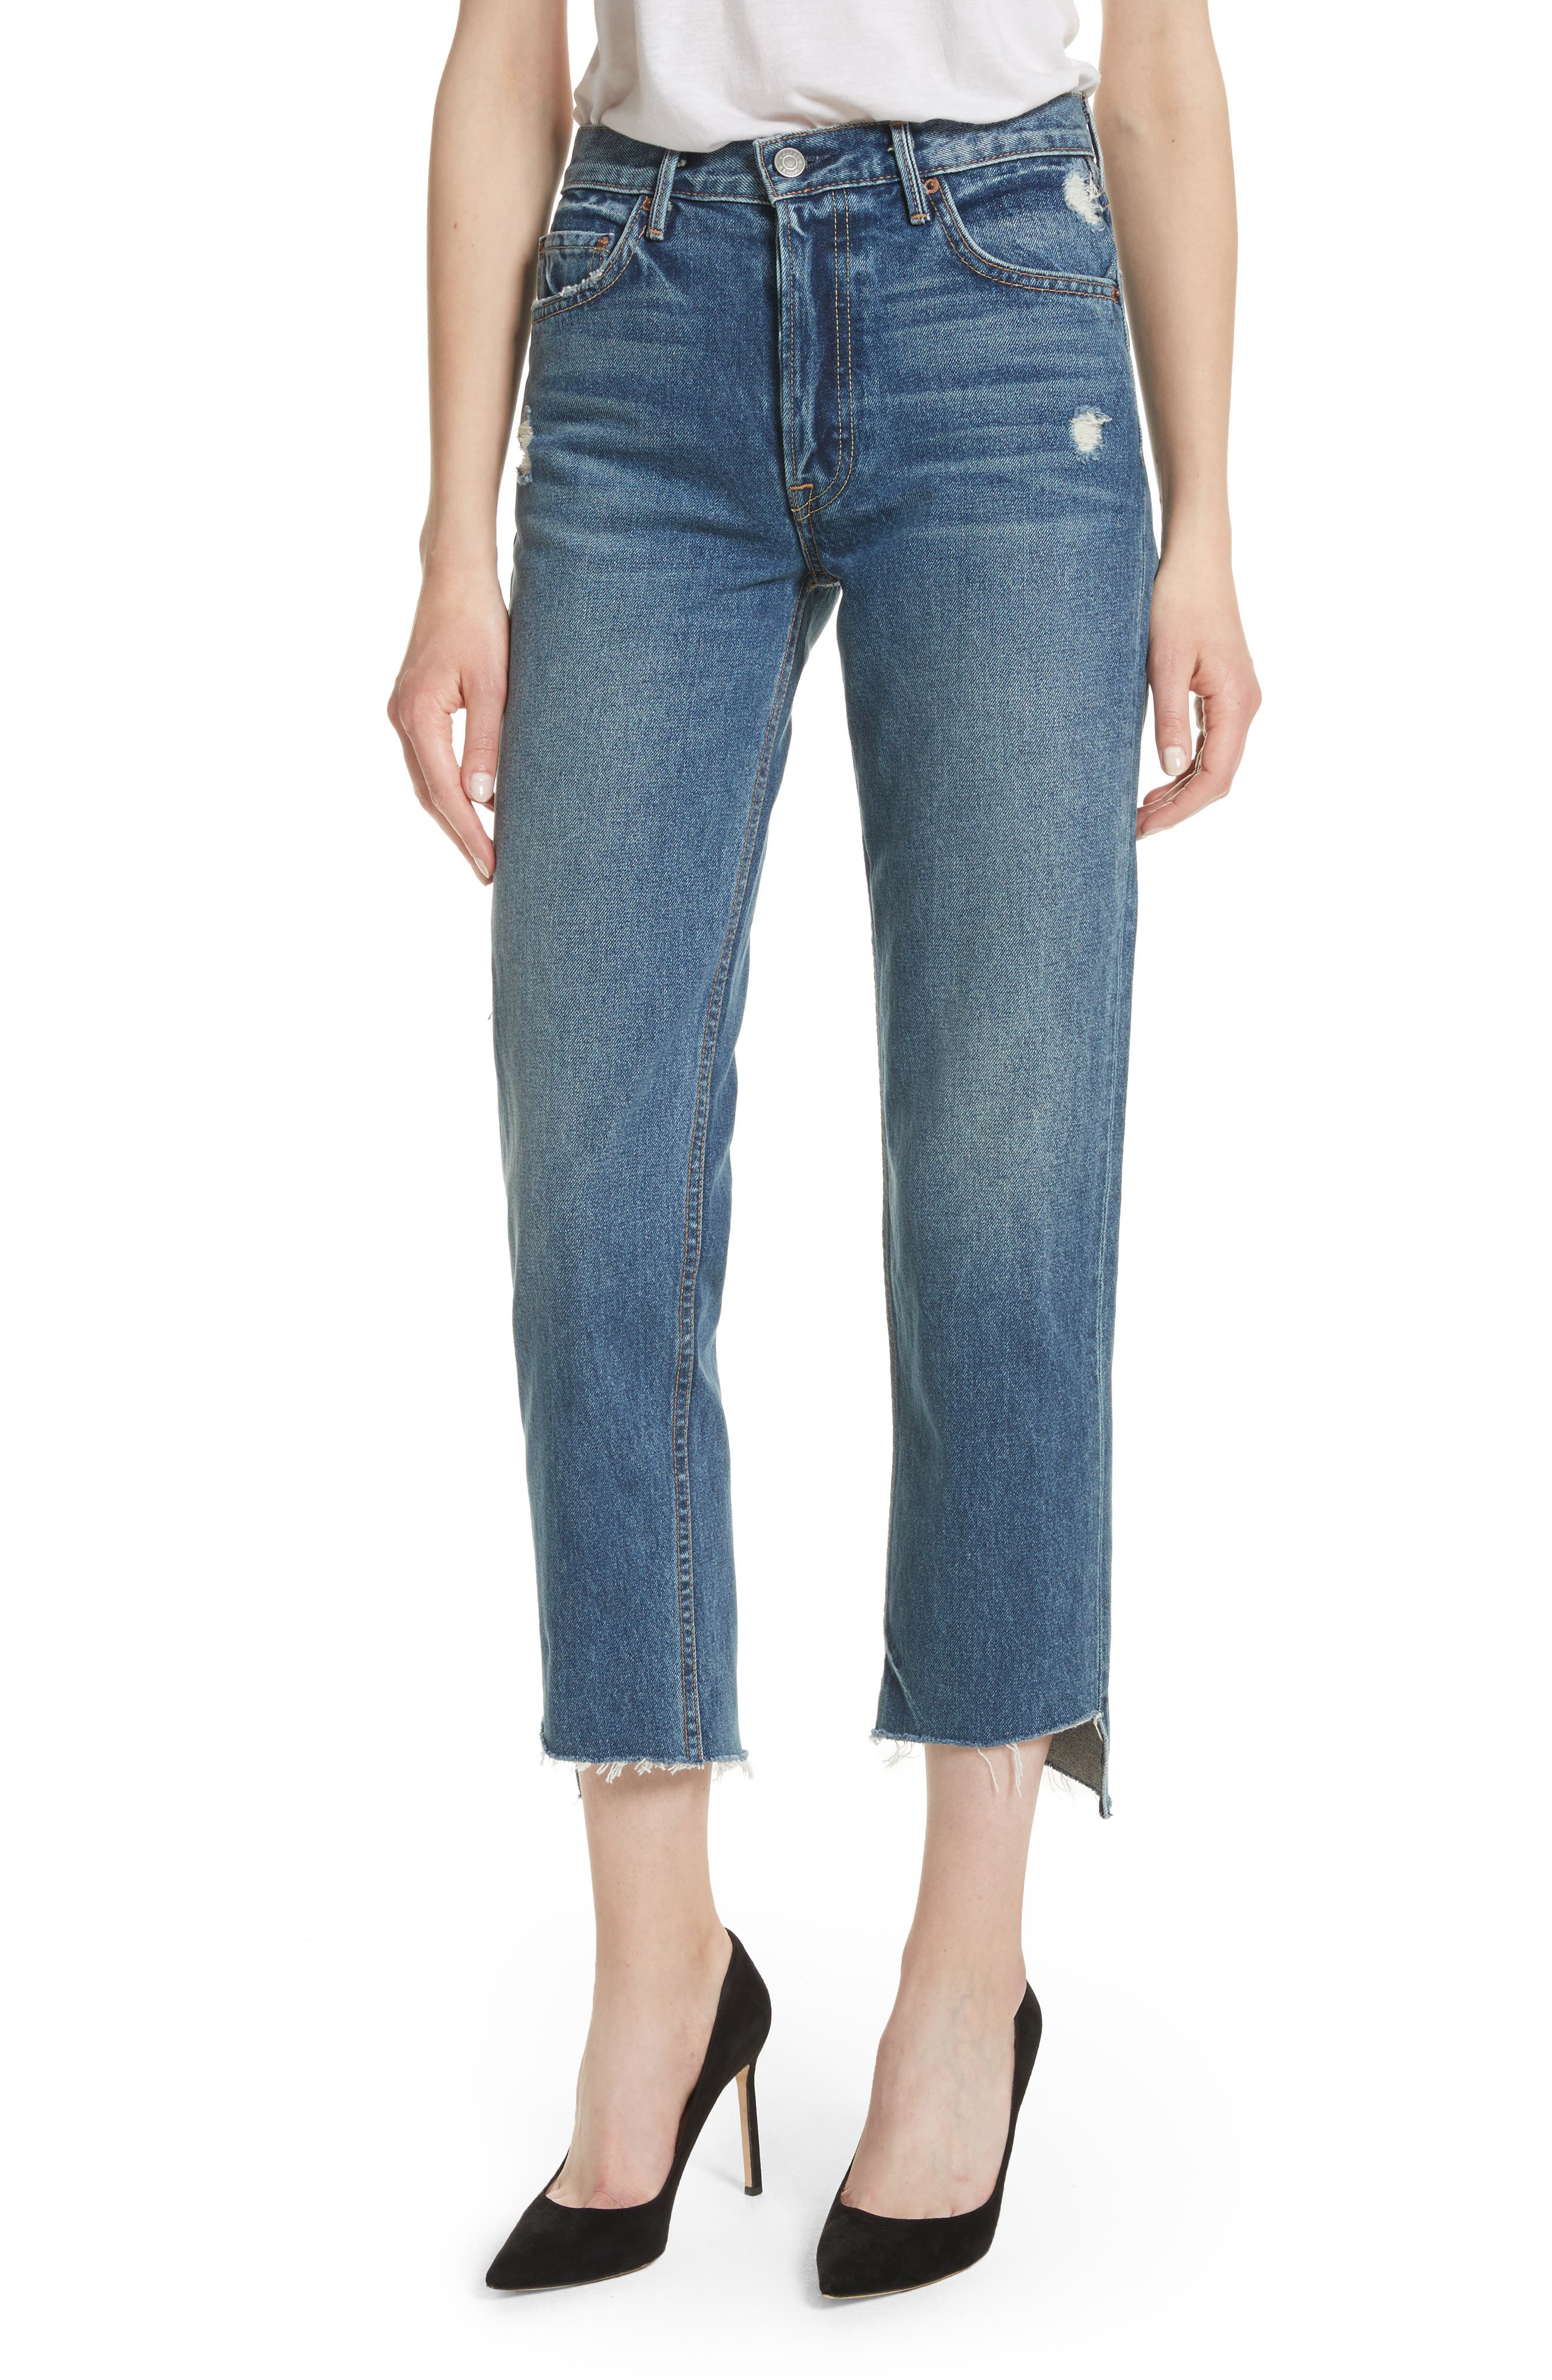 Helena Rigid High Waist Straight Jeans,                             Main thumbnail 1, color,                             CLOSE TO YOU